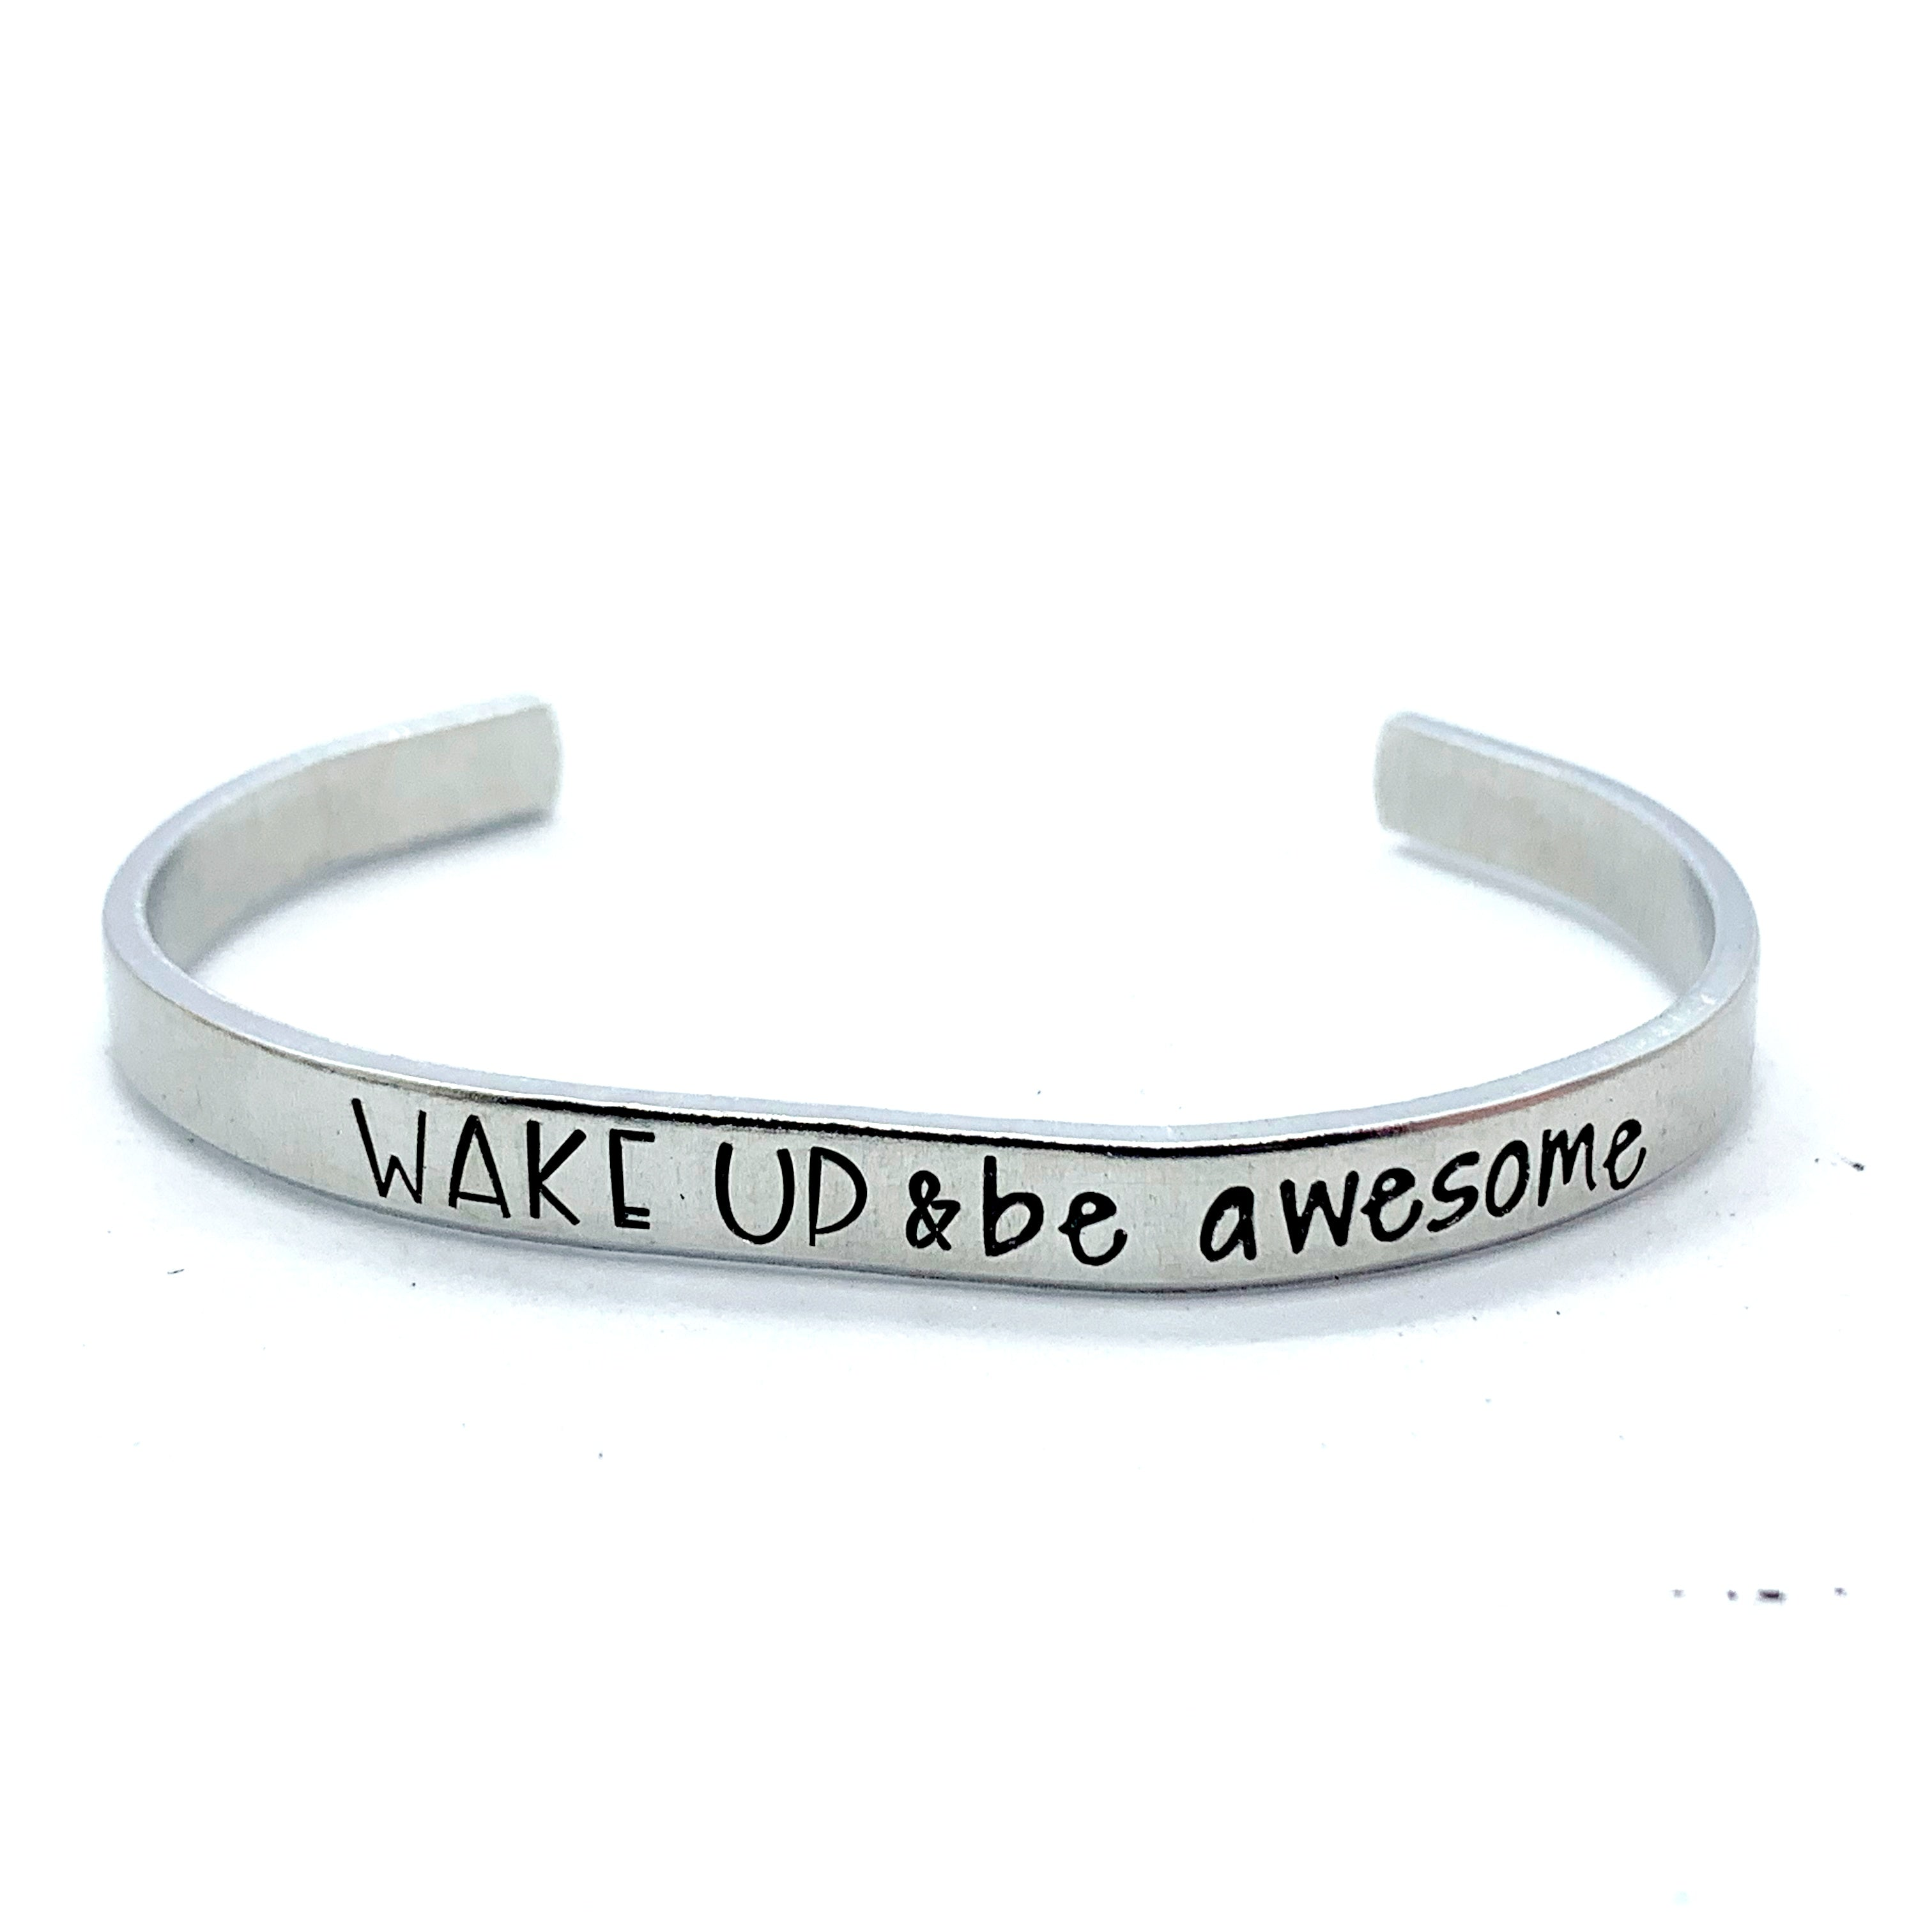 ¼ inch Aluminum Cuff - Wake Up & Be Awesome